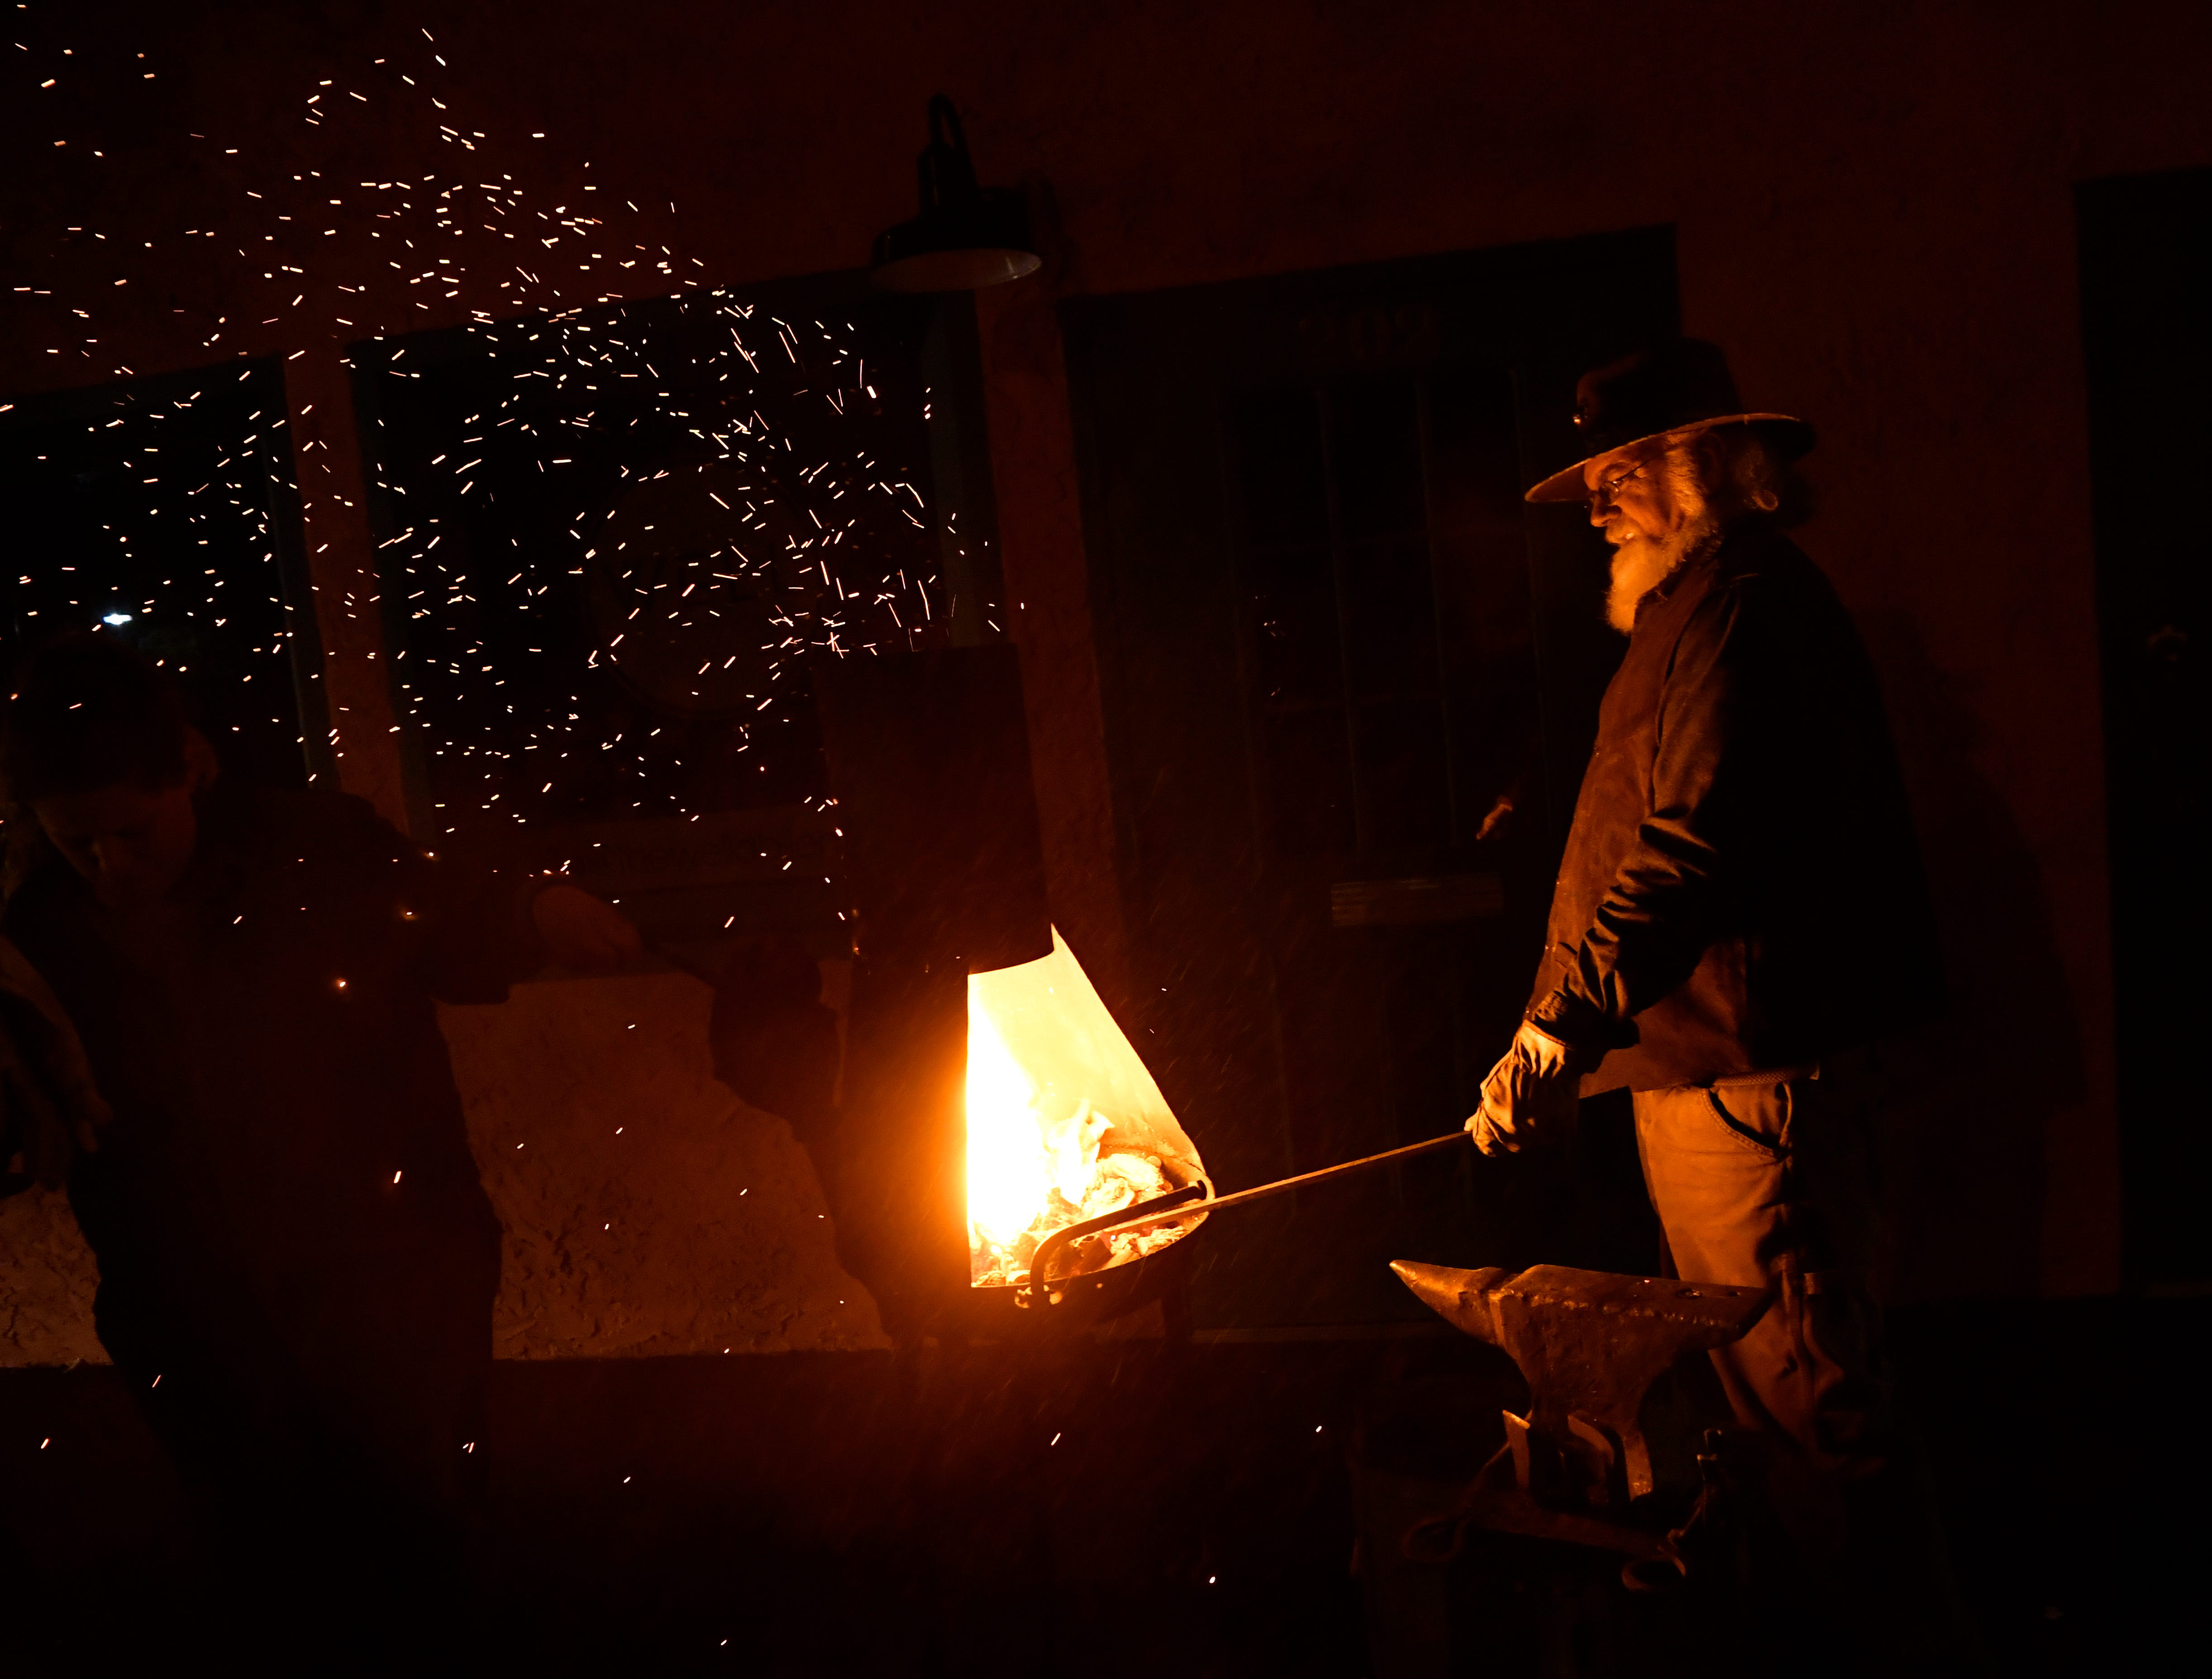 Sparks fly from the chimney of Michael Whitmore's portable forge during Thursday's ArtWalk. Whitmore teaches blacksmithing at his studio in Albany.